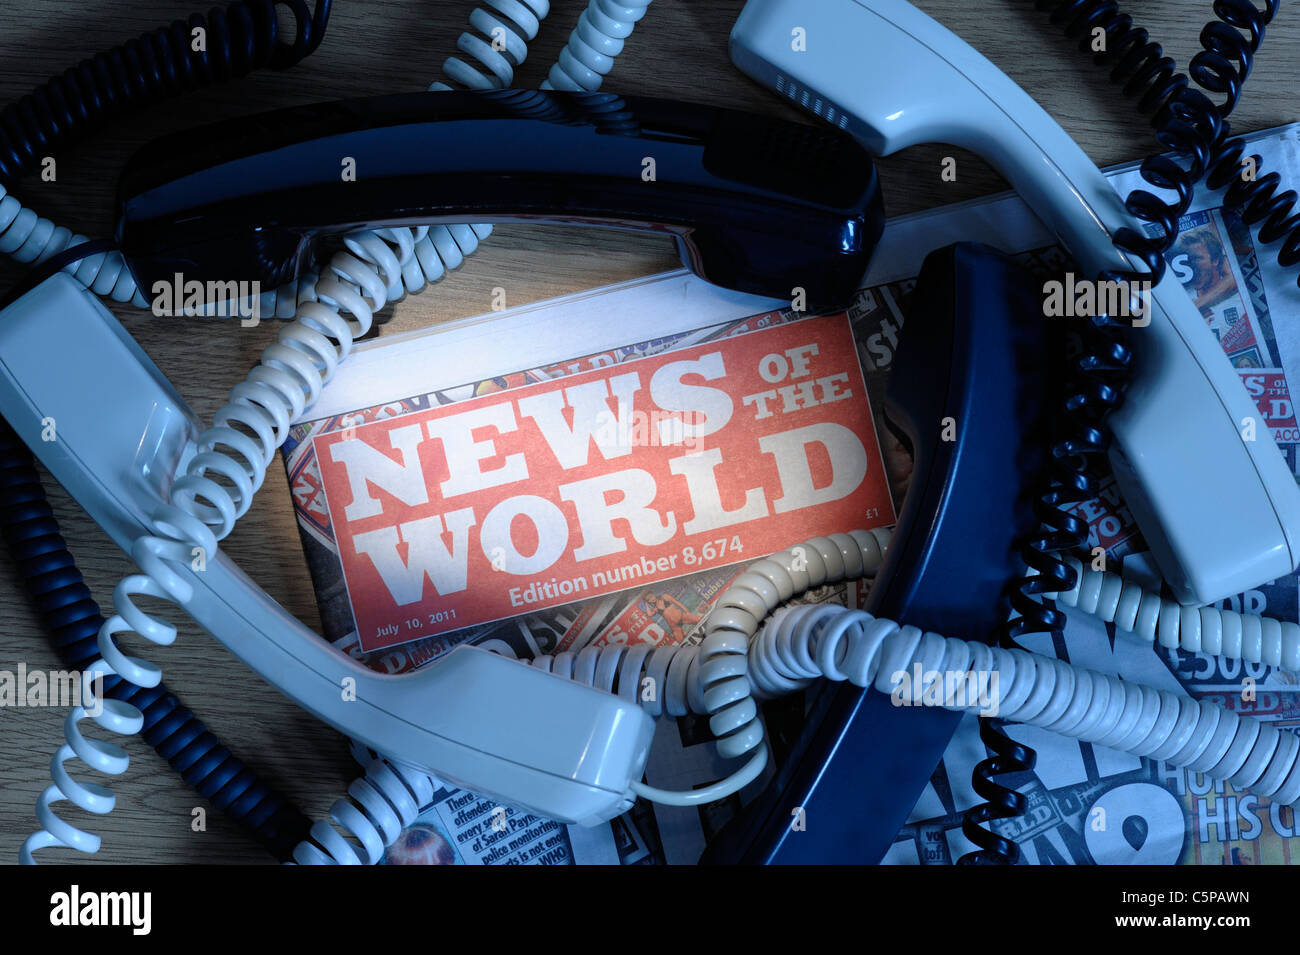 News of the World Phone Hacking Scandal - Stock Image